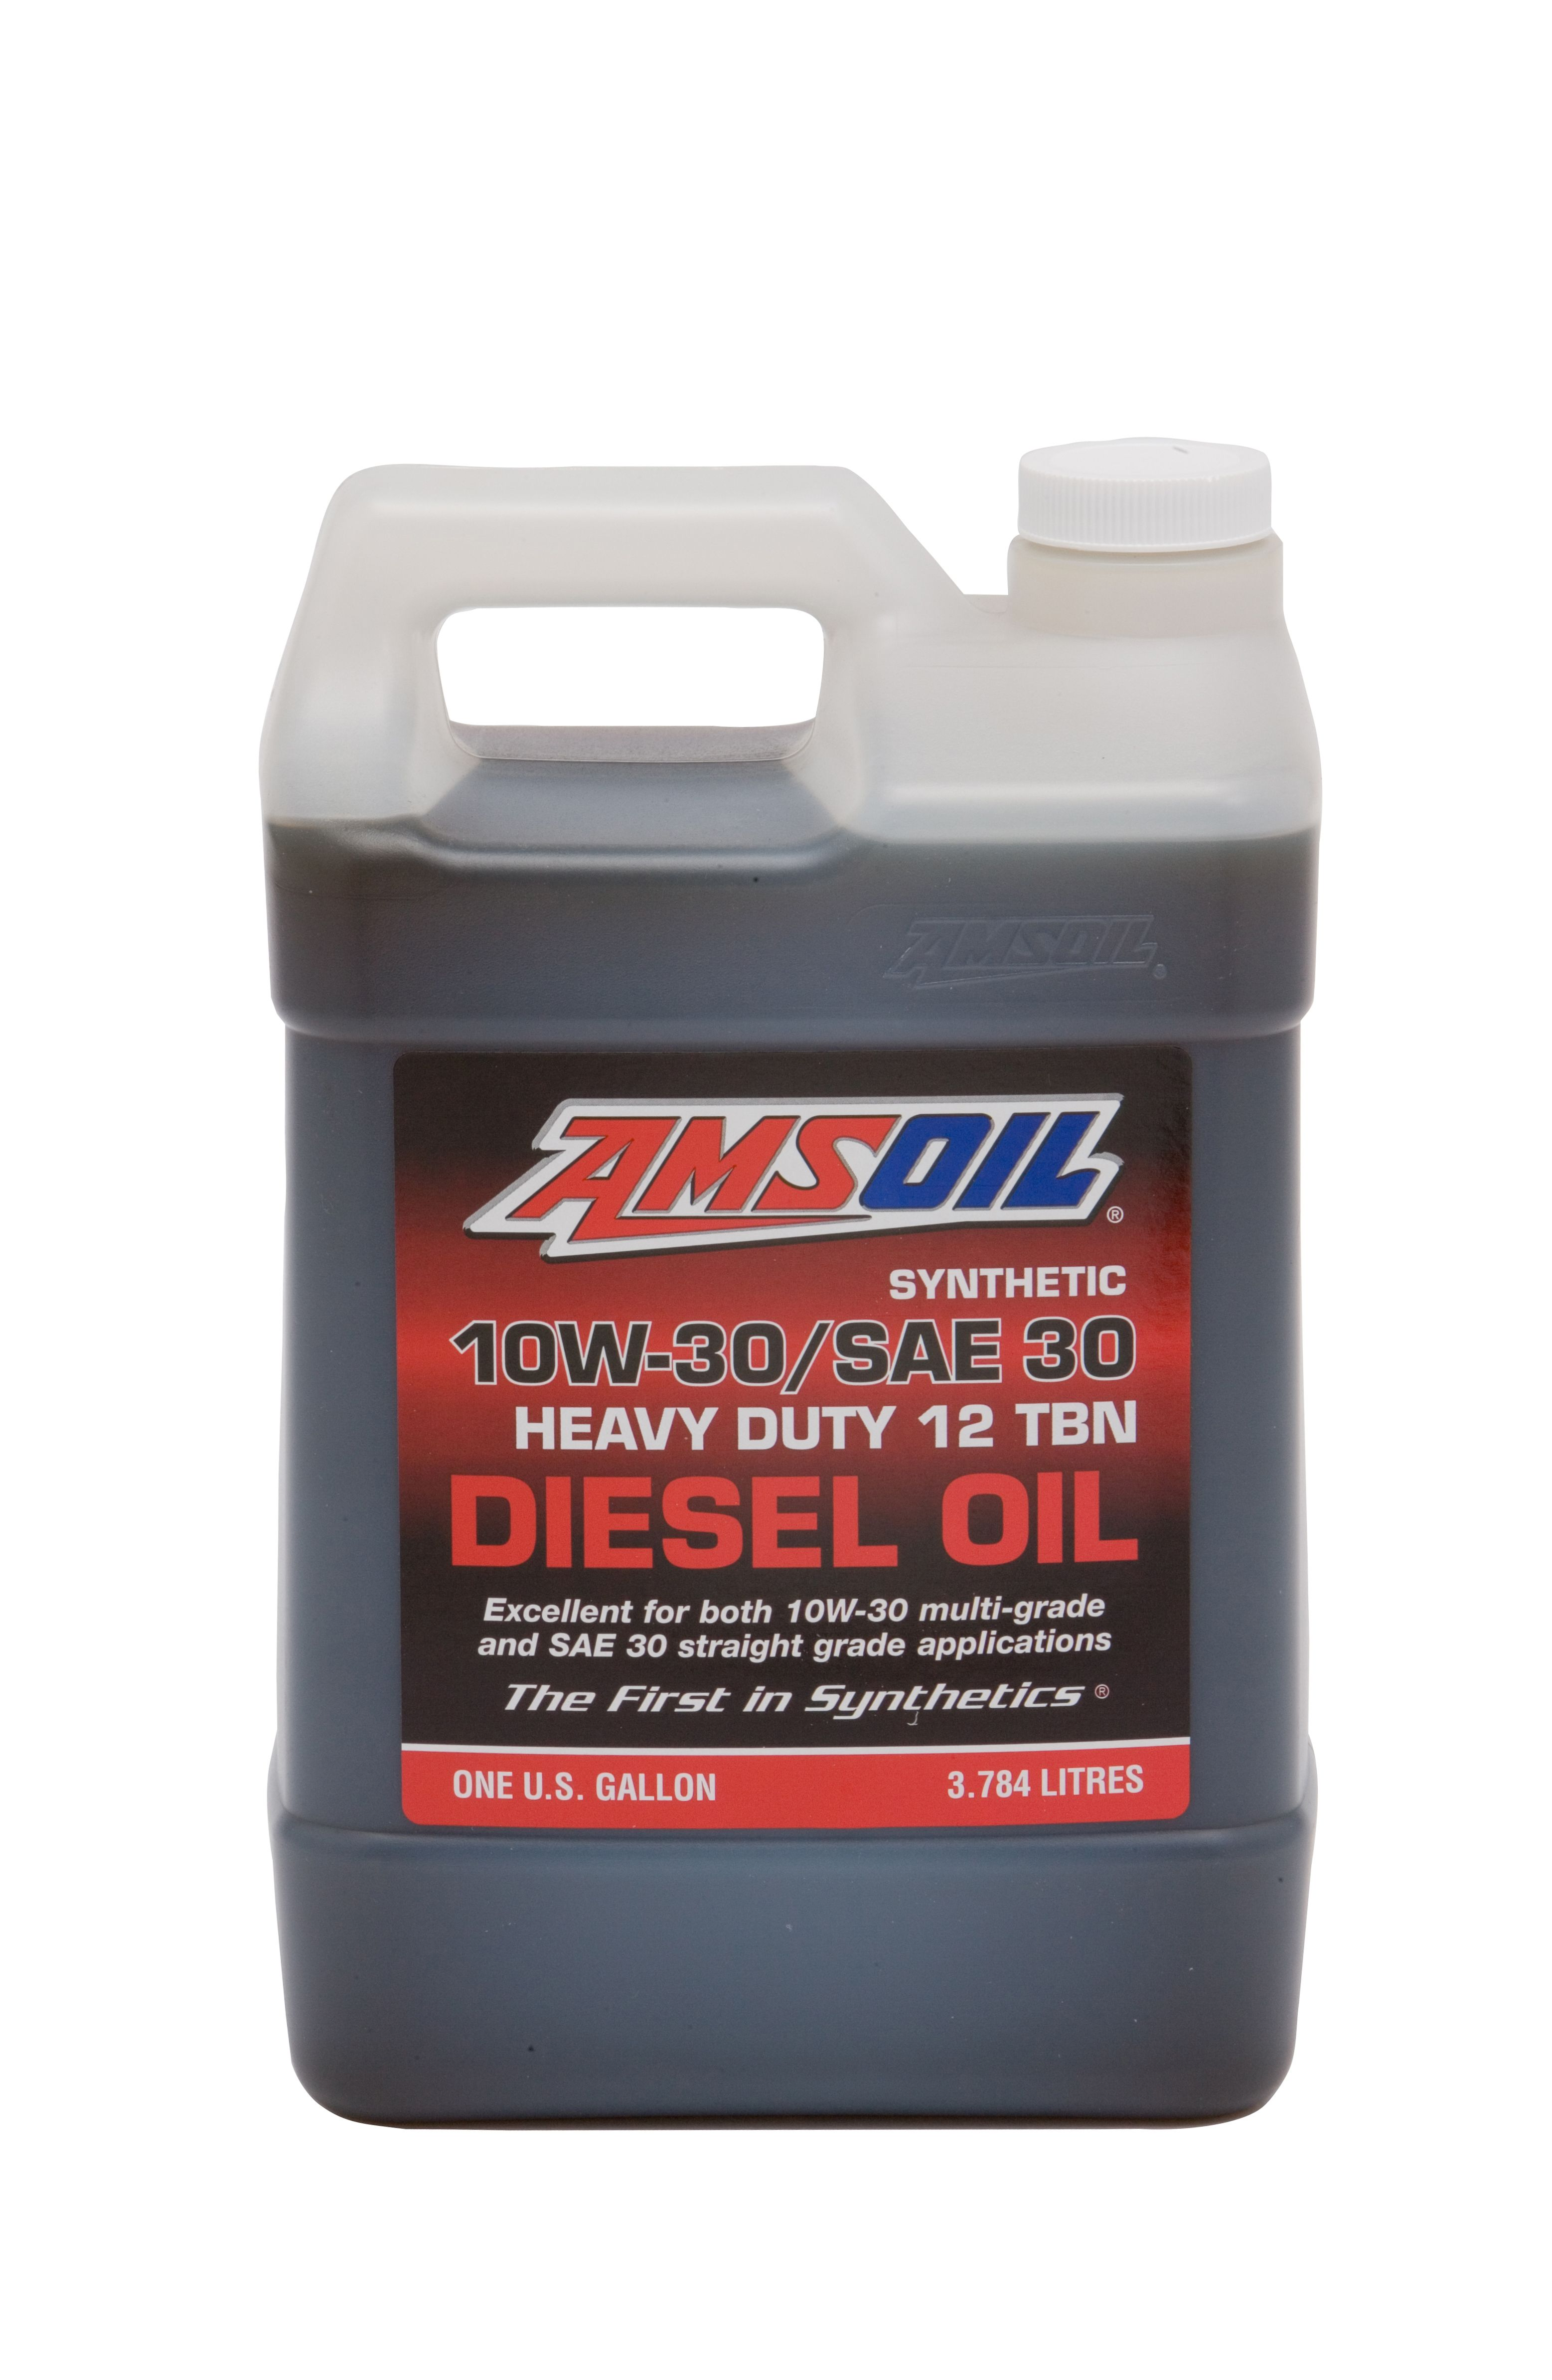 Amsoil Synthetic Sae 10w 30 Heavy Duty Motor Oil Outperforms Conventional Sel Oils Exceeds Both Multi Grade And Straight